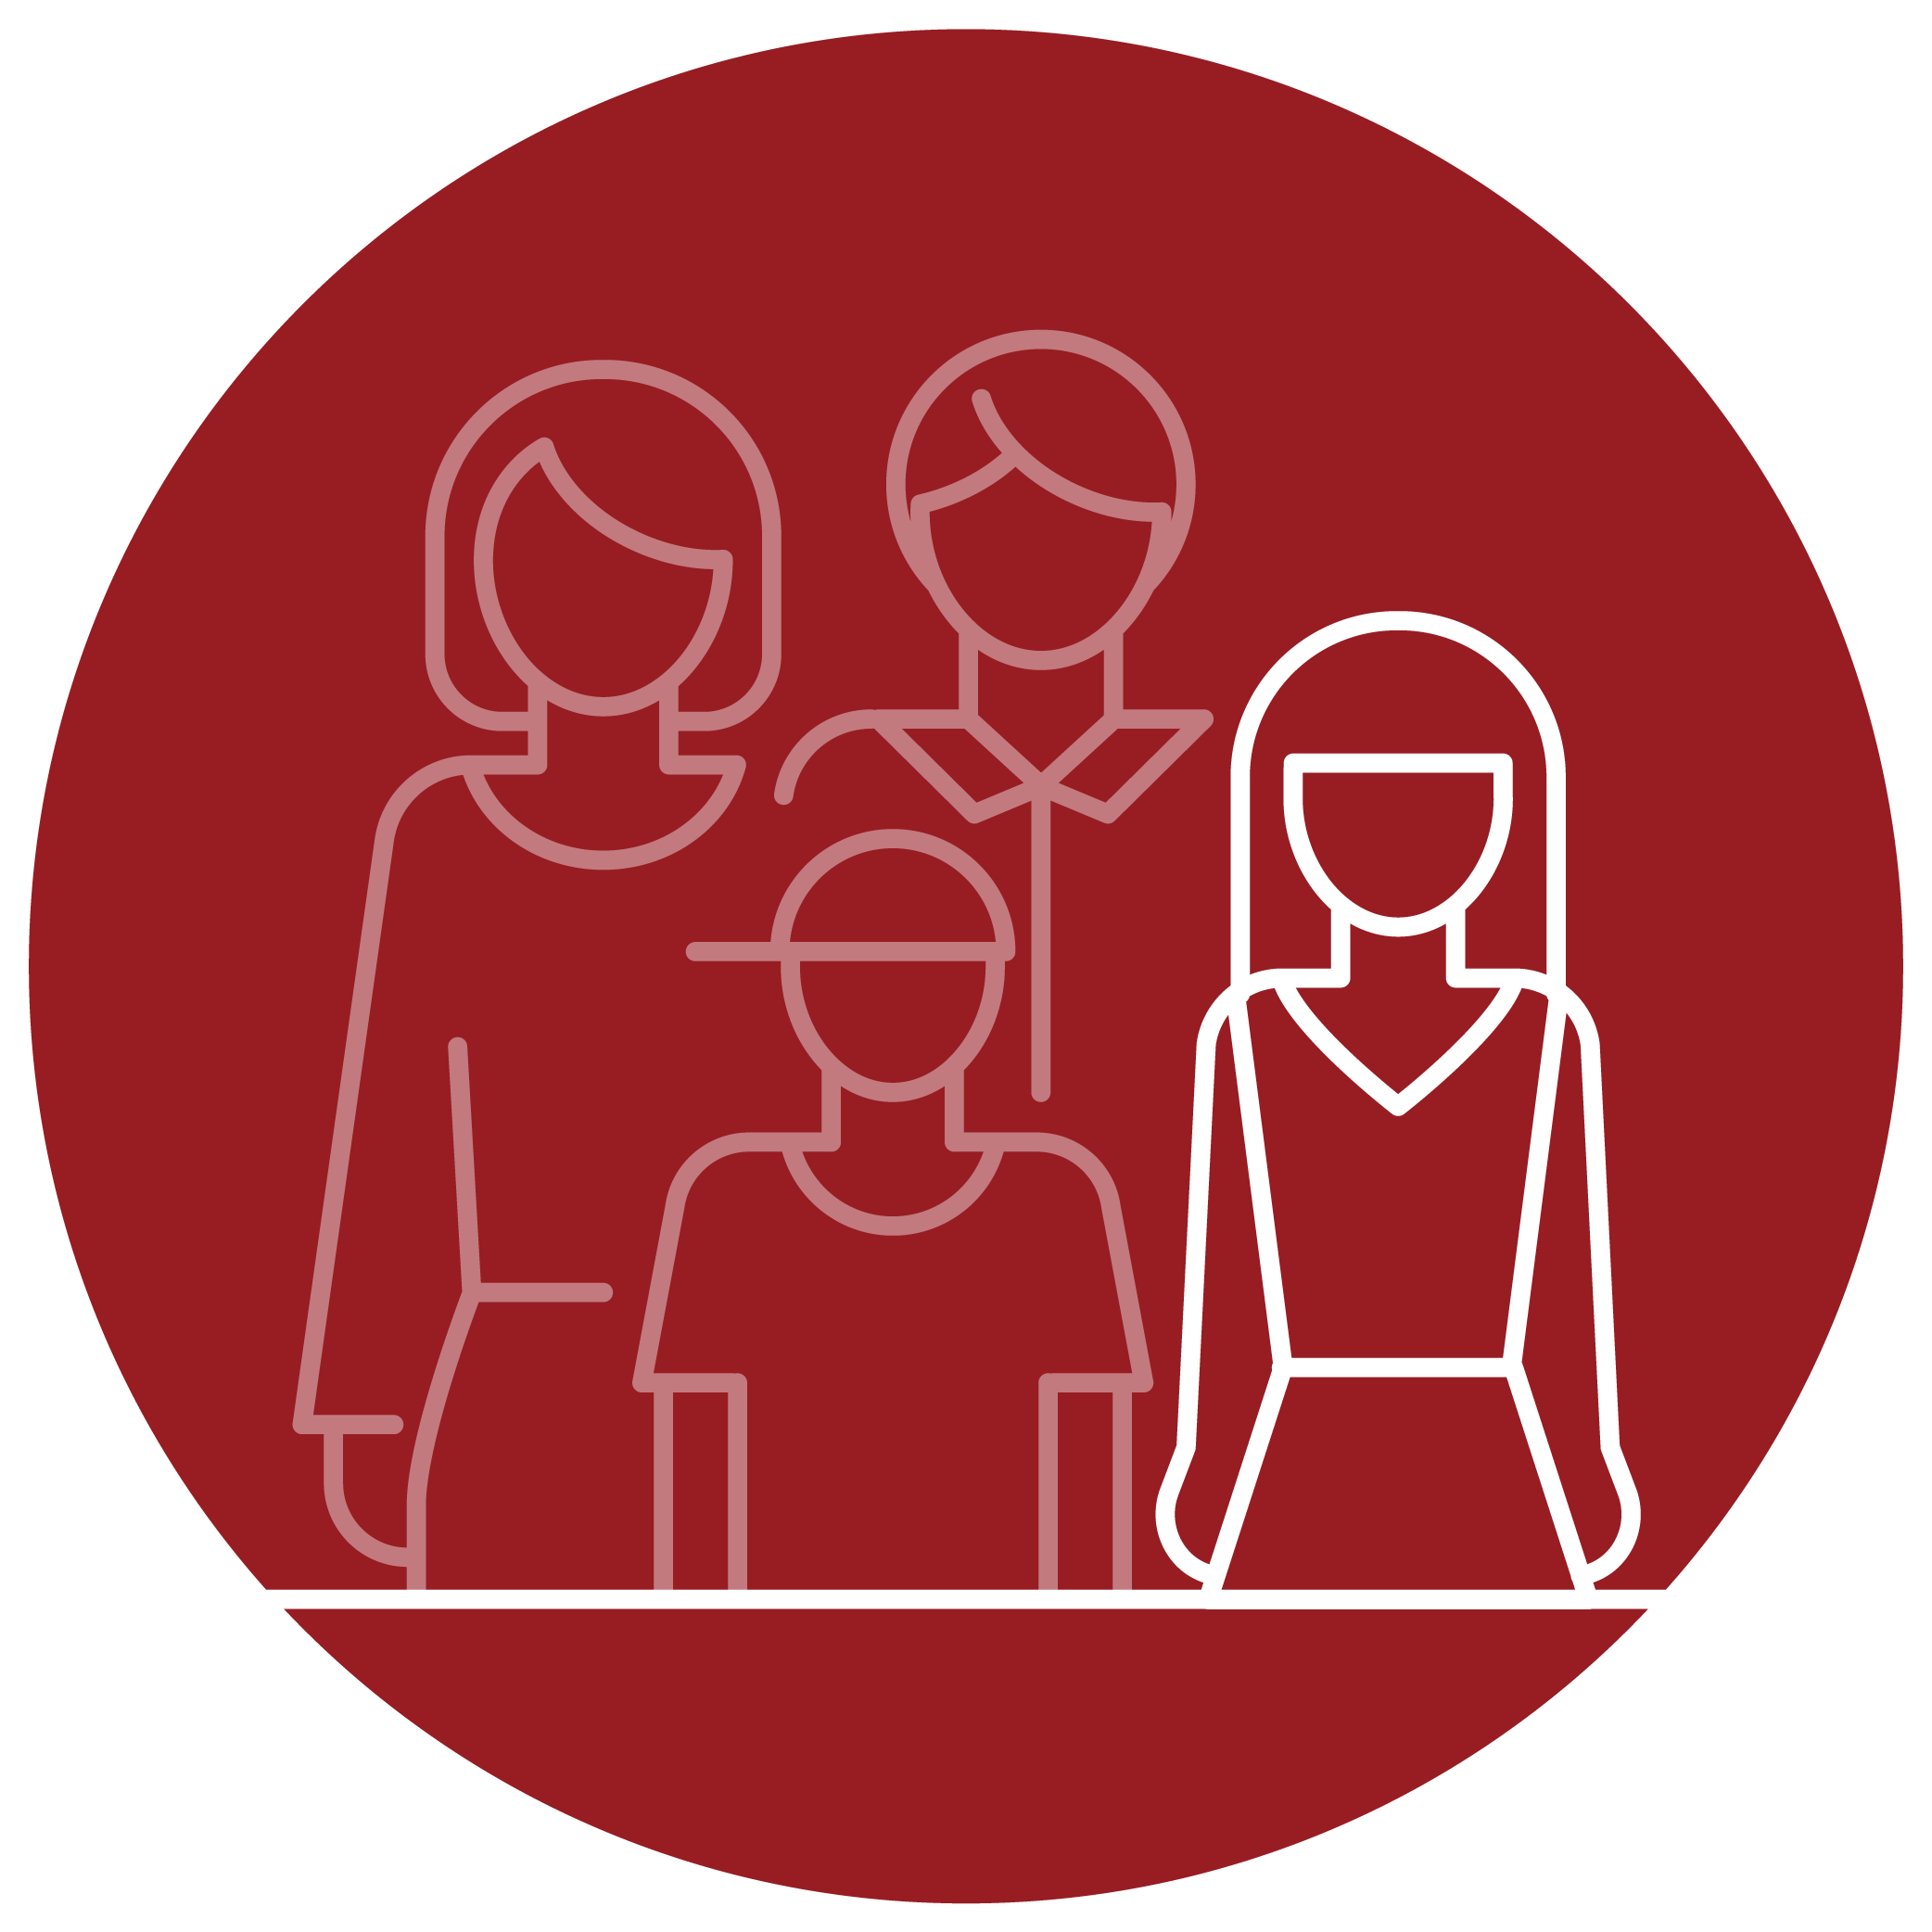 An illustrated, outlined family in a red circle. The daughter is highlighted to signify an eligible individual.